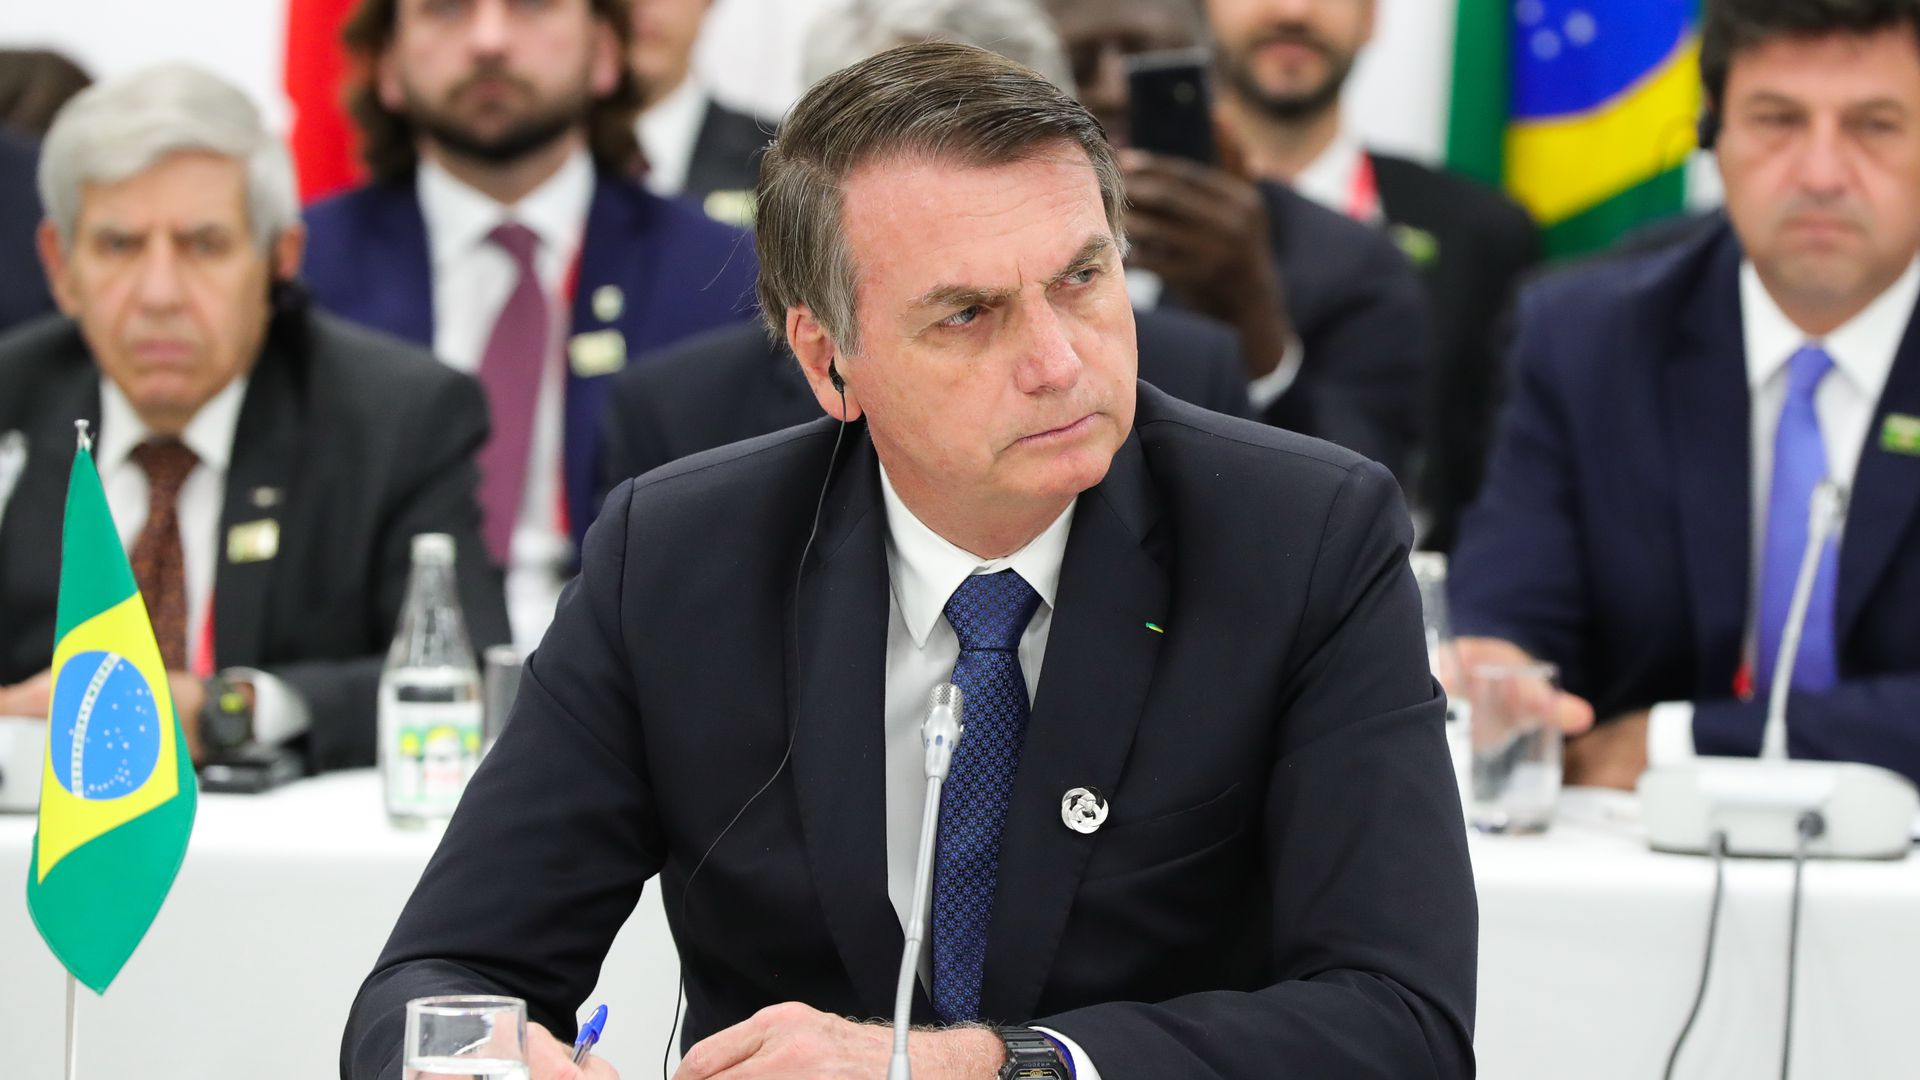 Bolsonaro sitting down and looking to the side.